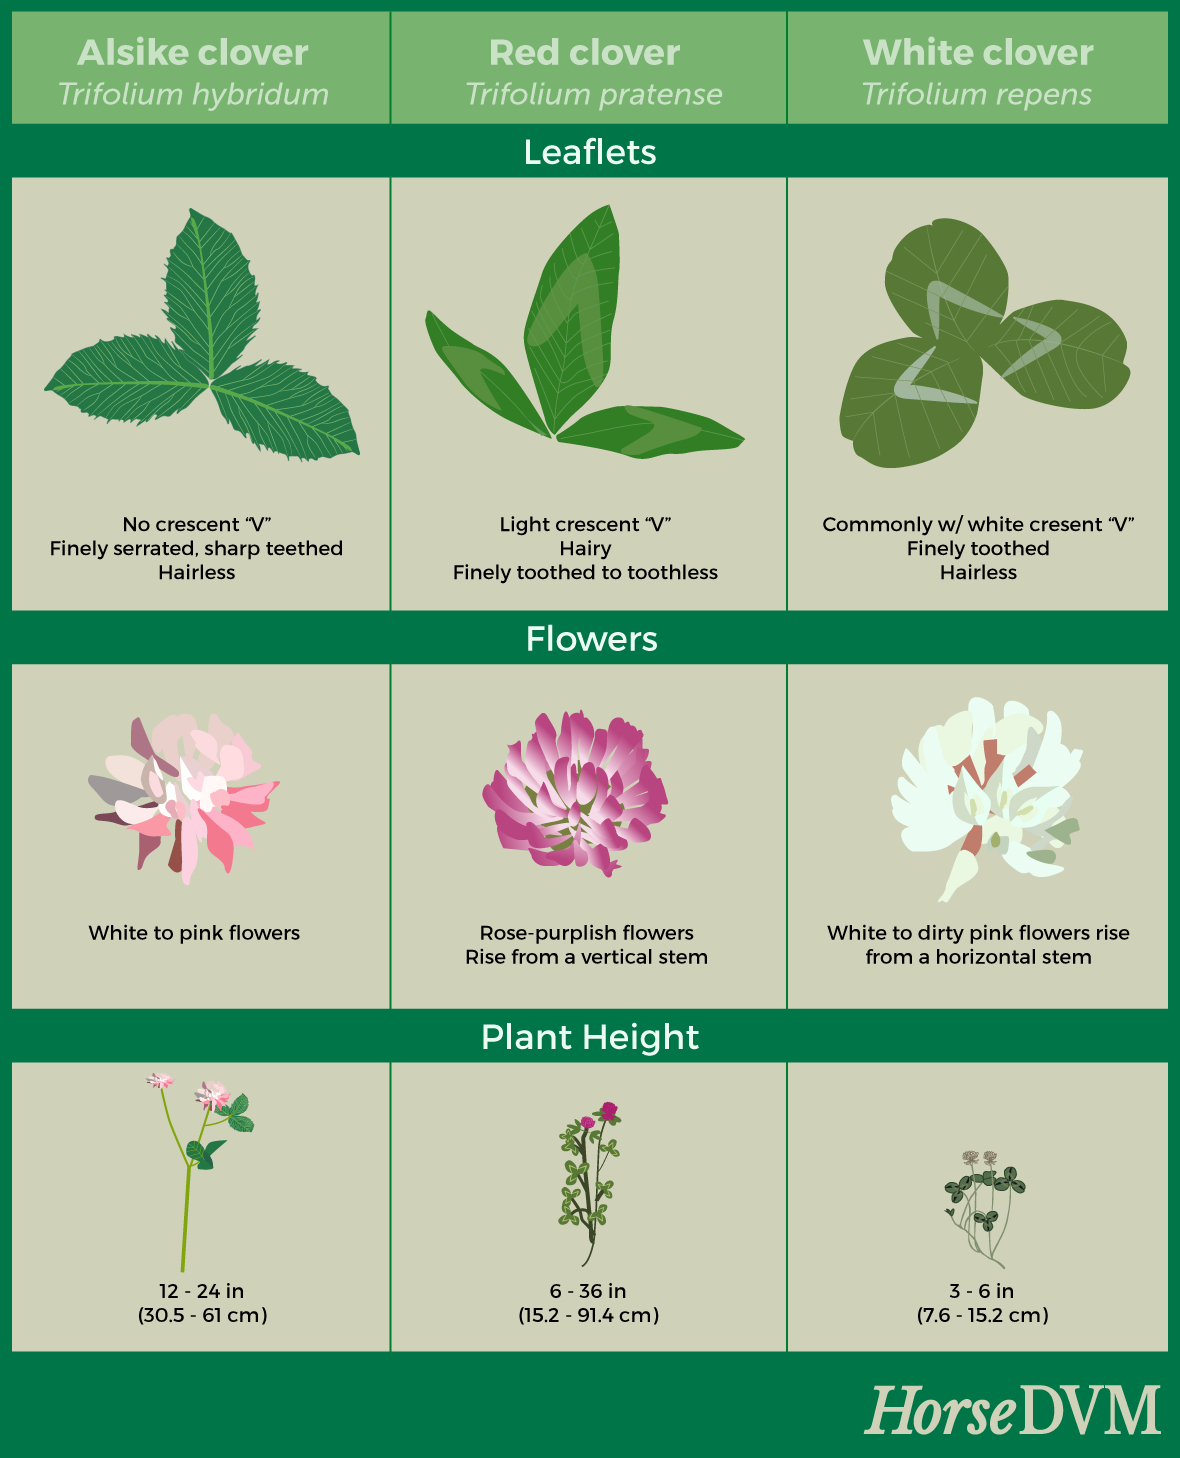 Clover species comparison